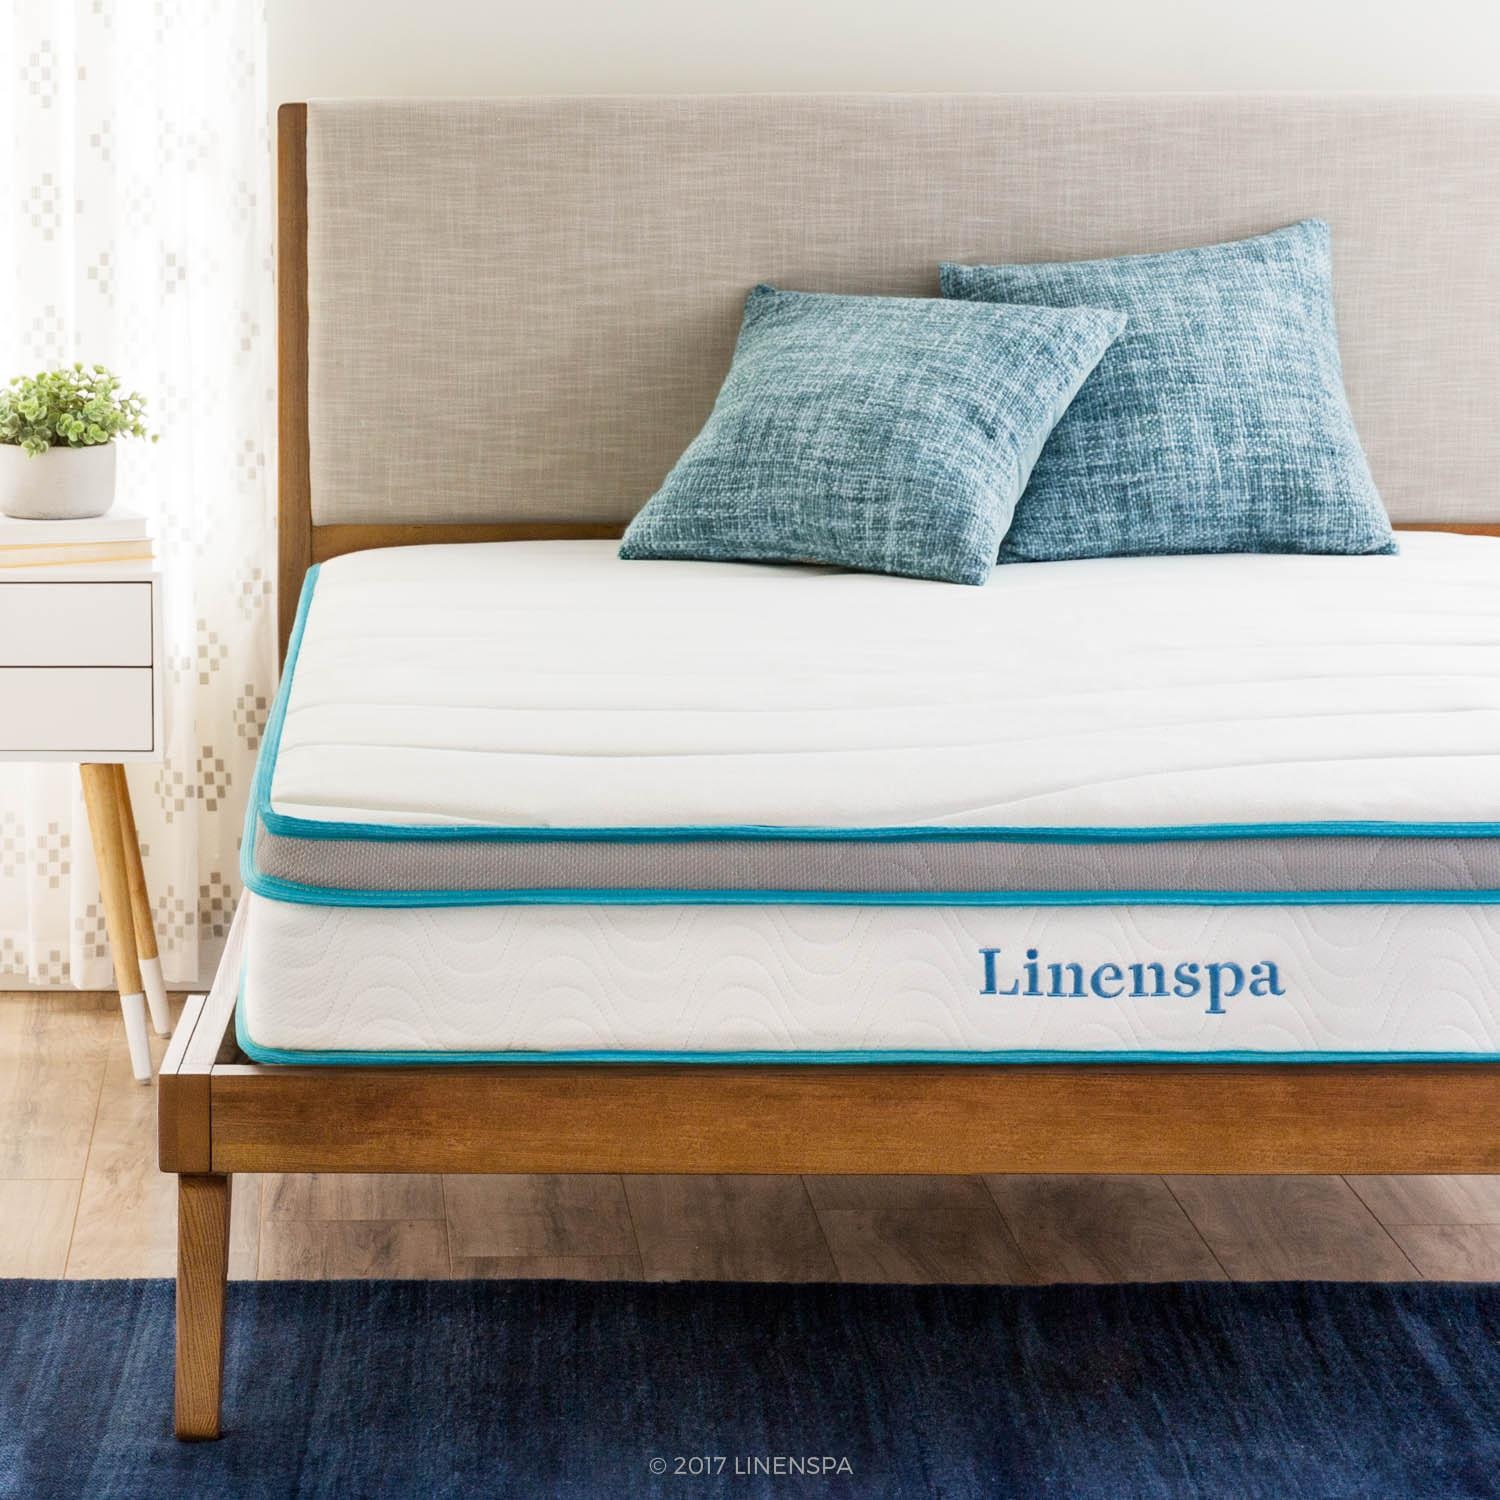 Linenspa Hybrid 8'' mattress in a bedroom